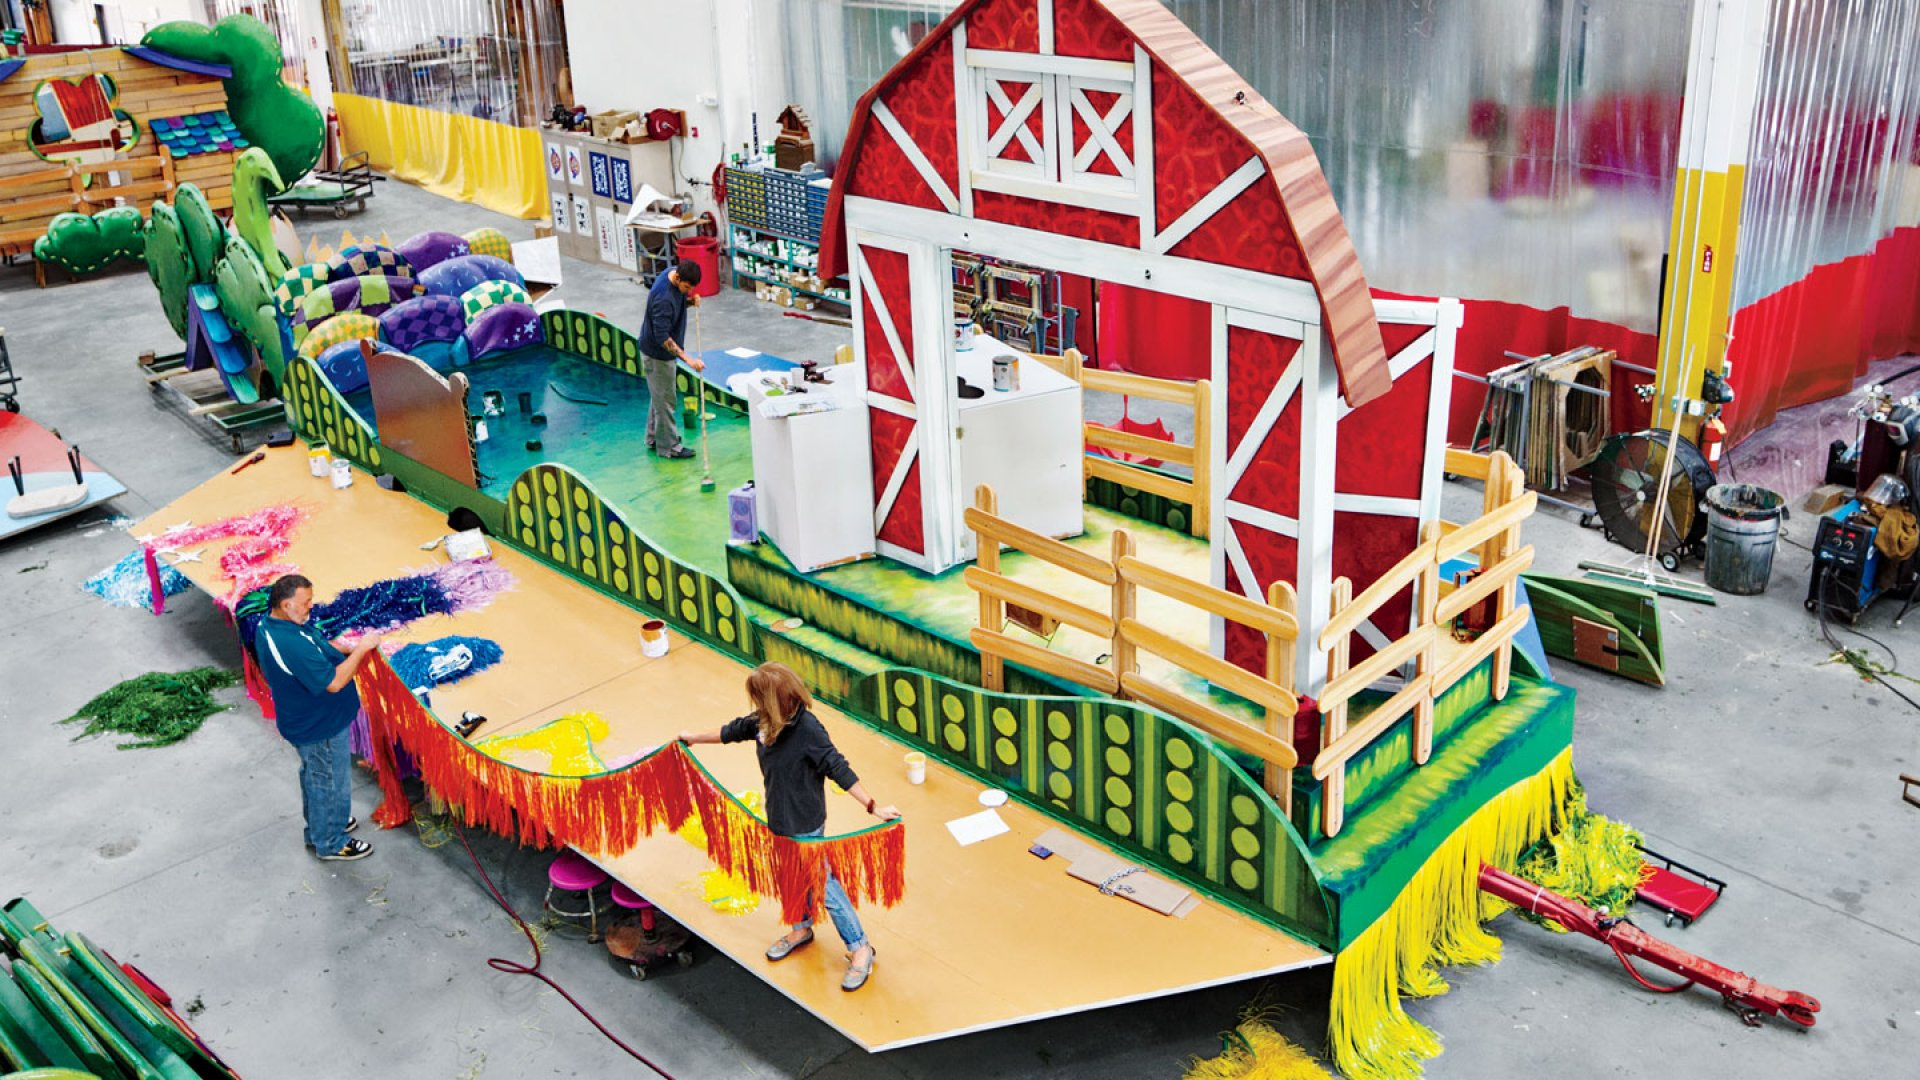 <b>Fringe Fest</b>: Artists at the Macy's studio assemble a float for Sprout, the preschool cable channel set to make its Thanksgiving Day parade debut this year.